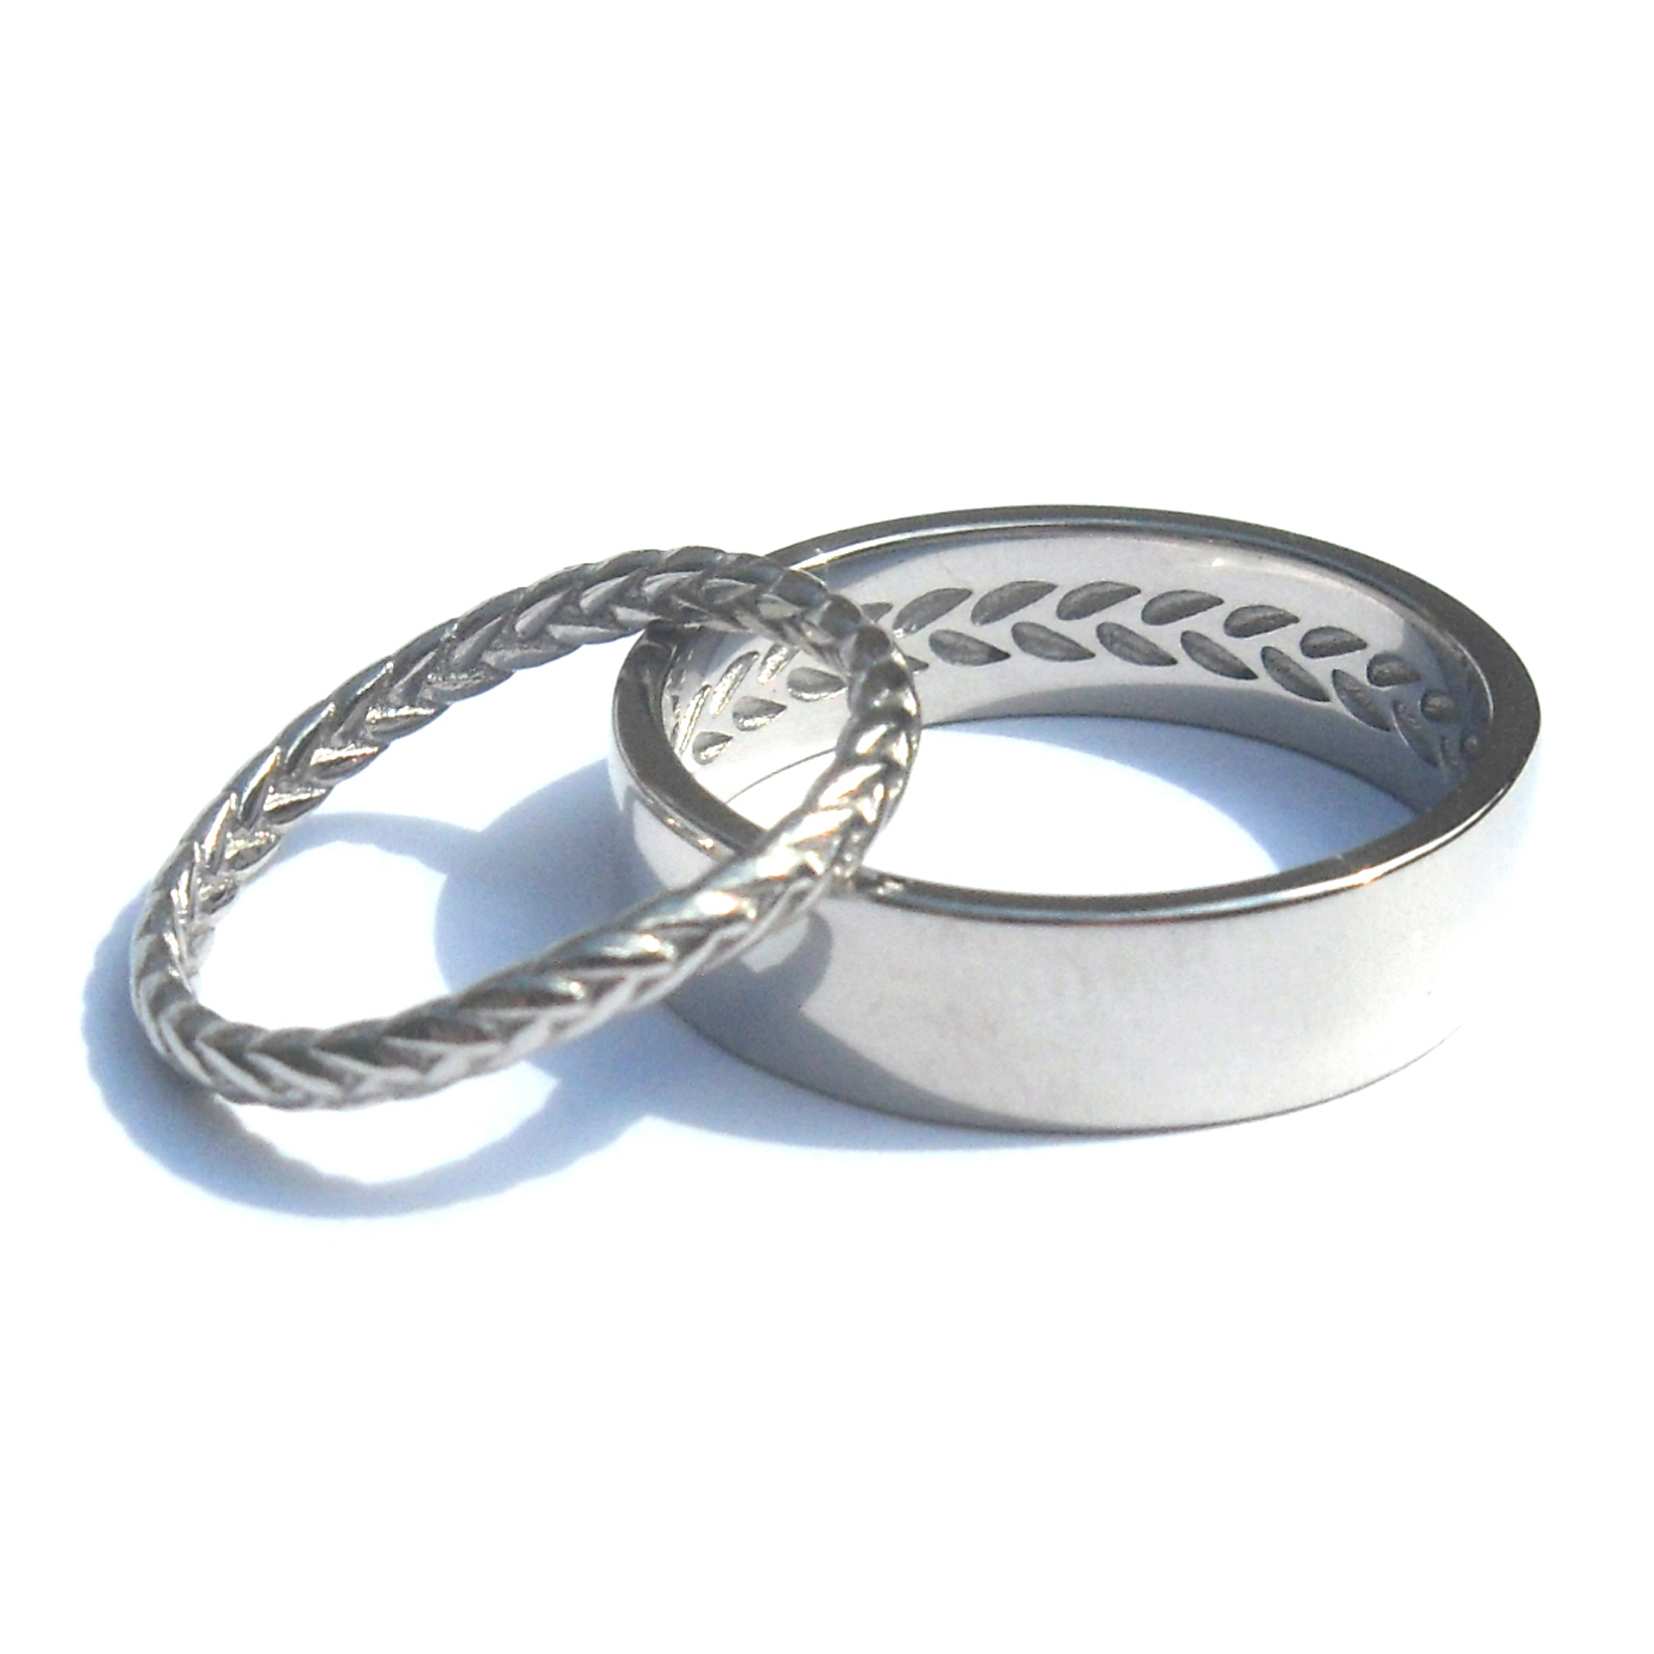 bilingual design white gold wedding rings echo braid